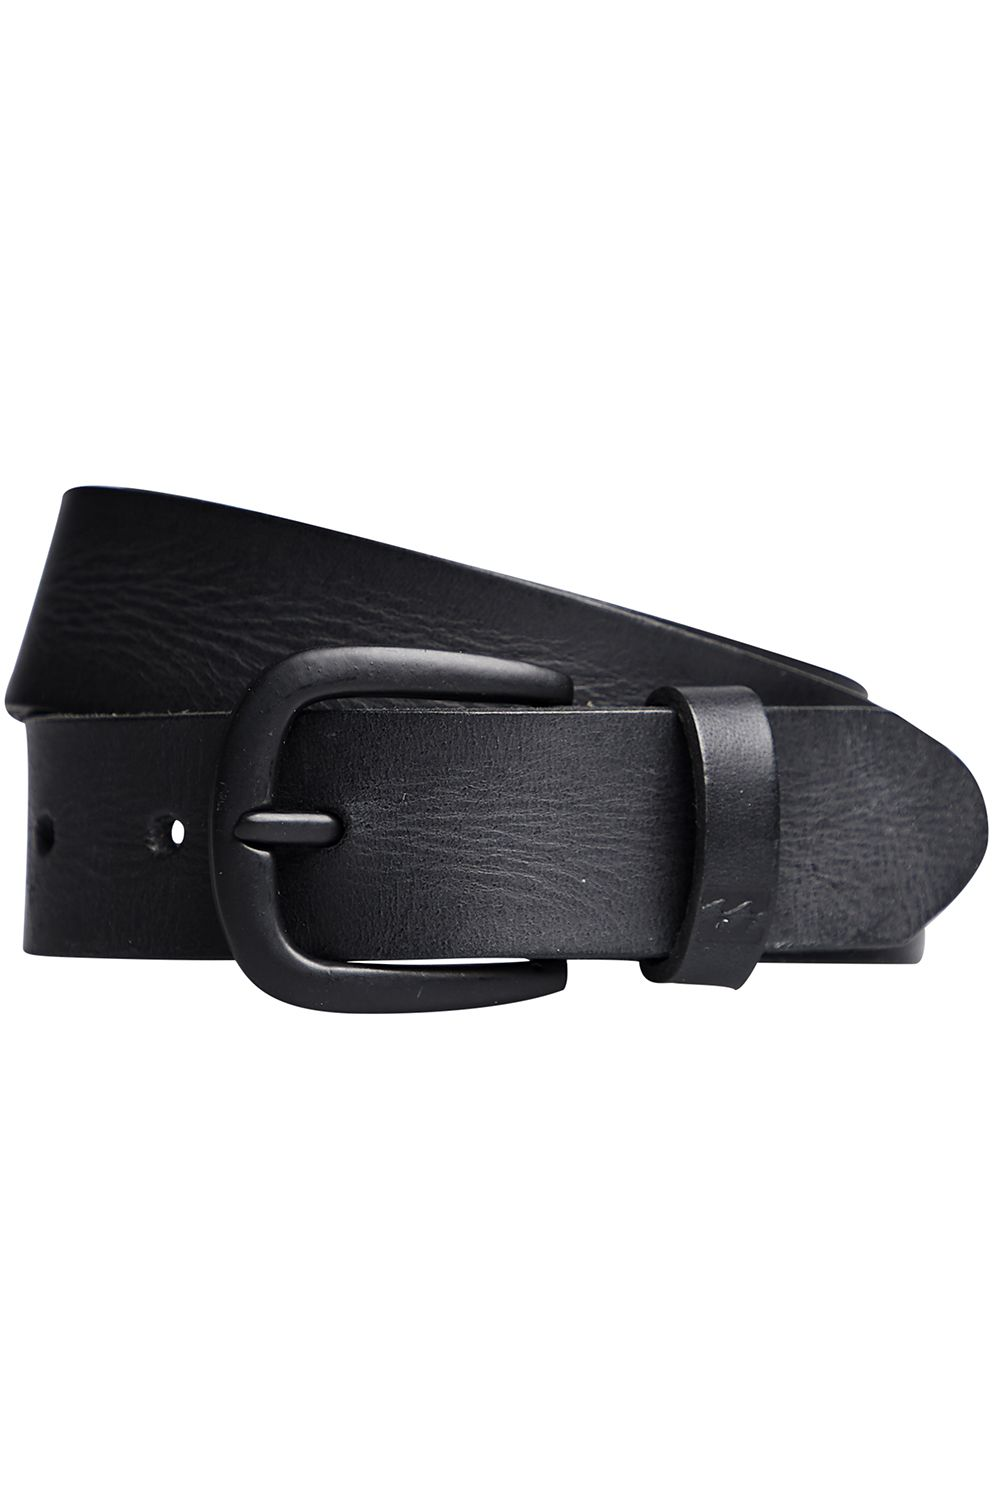 Cinto Pele Billabong ALL DAY LEATHER Black